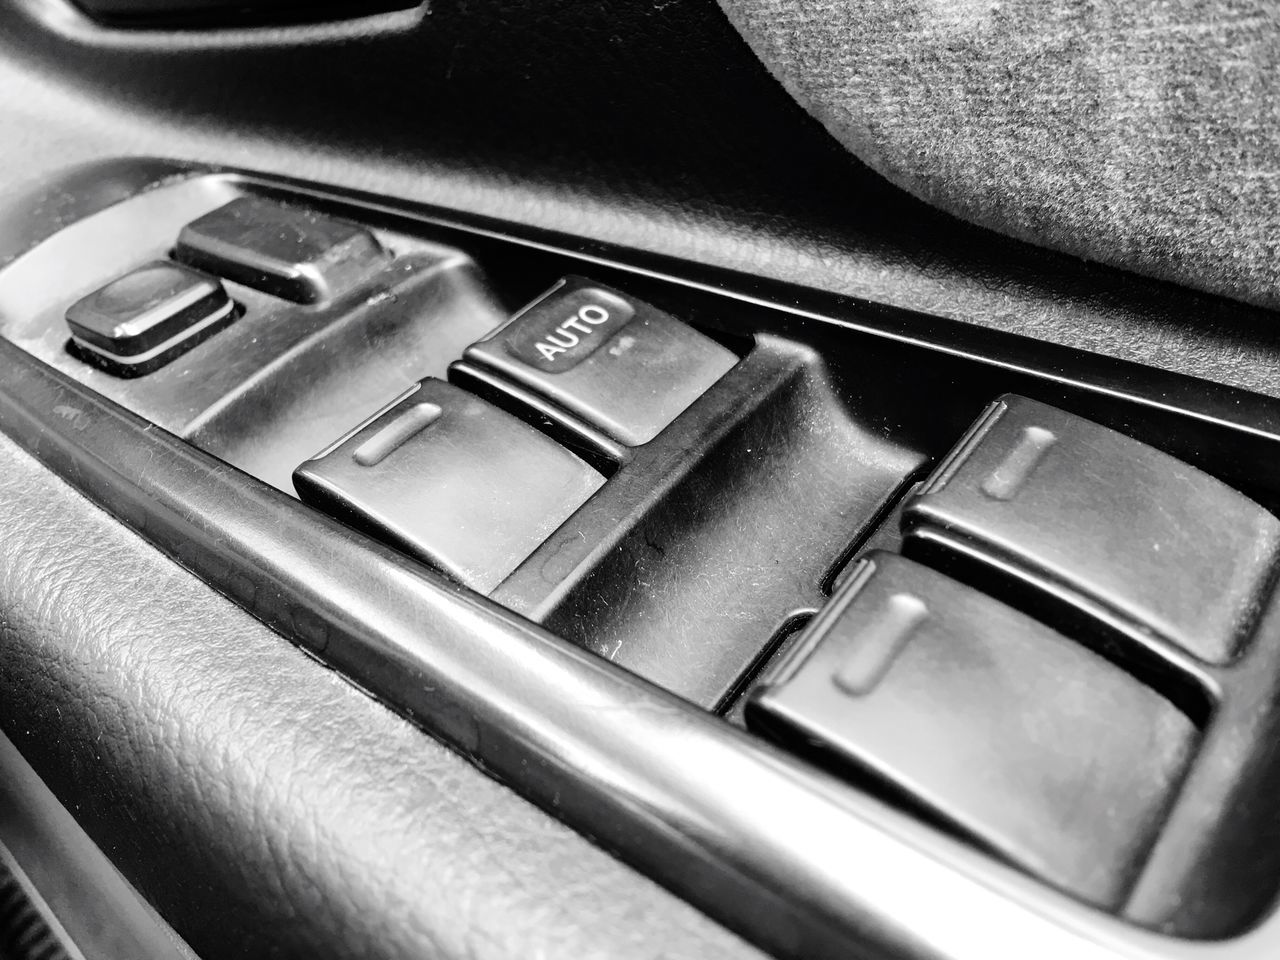 Technology High Angle View Indoors  Close-up No People Day Alphabet Modern Computer Key Keyboard Camera - Photographic Equipment Photography Themes Interior Car Design